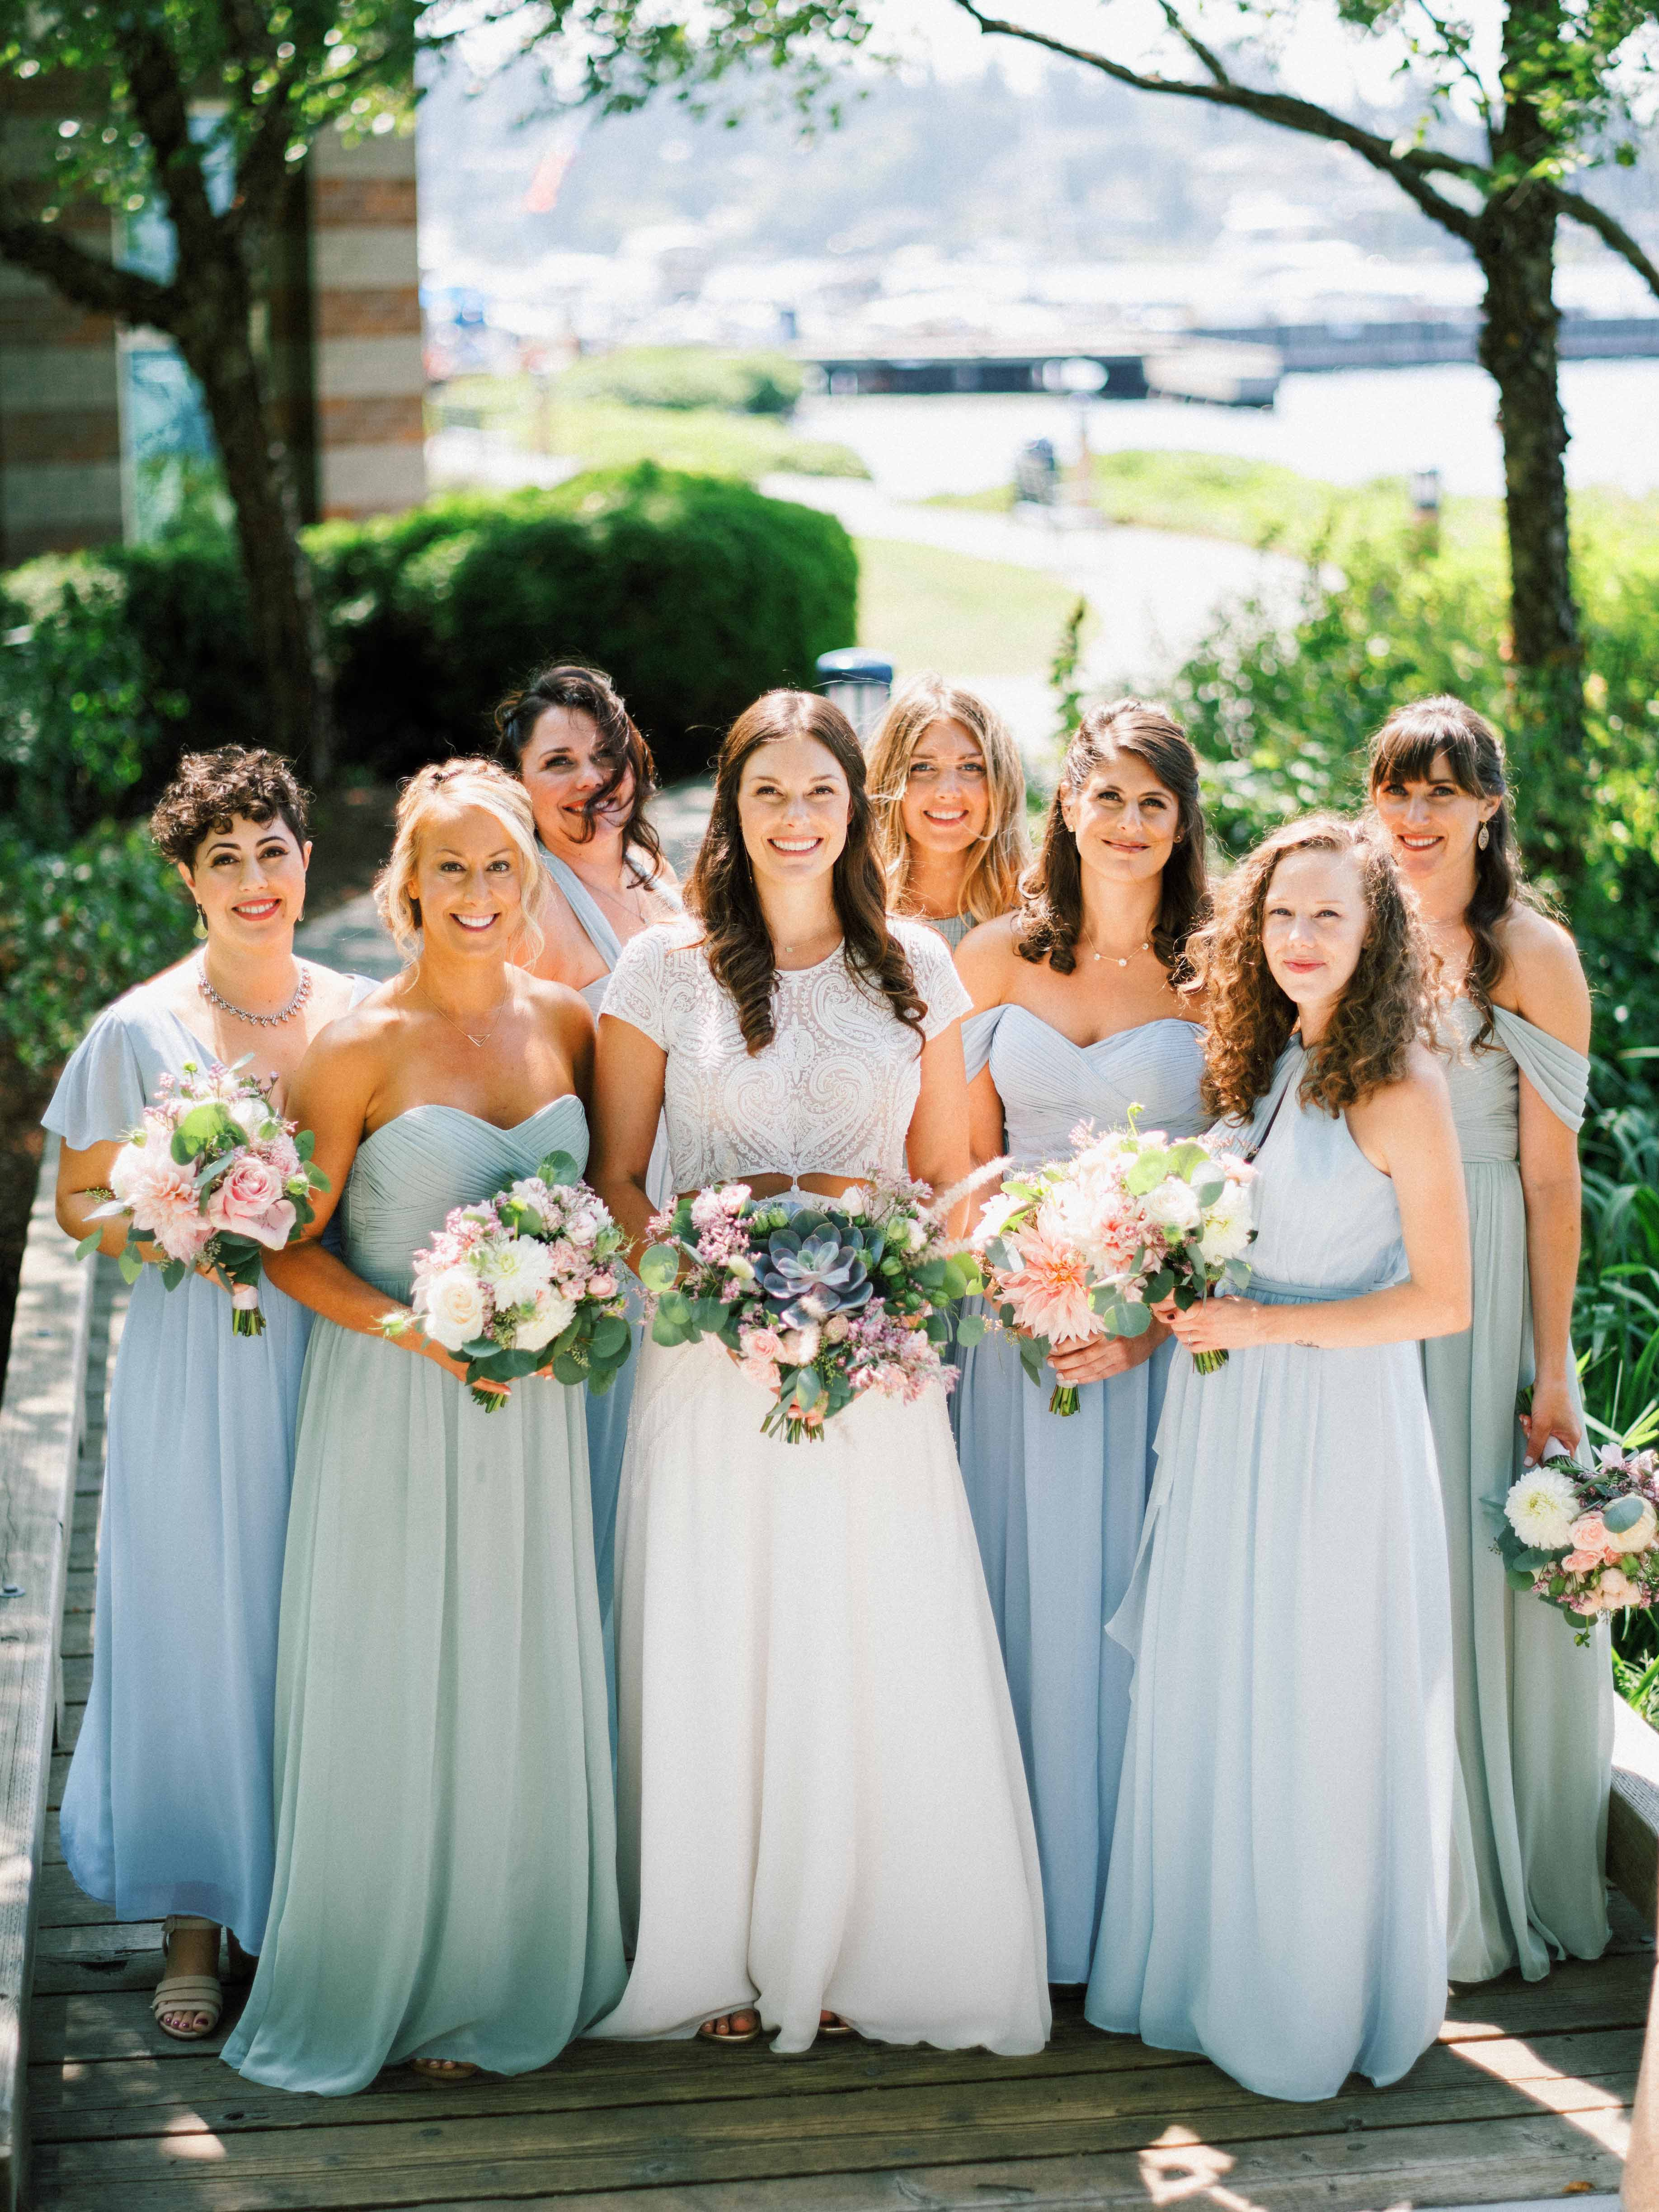 bridal party in blue green dresses holding bouquets of greenery and succulents - Woodmark Hotel Wedding by Flora Nova Design Seattle